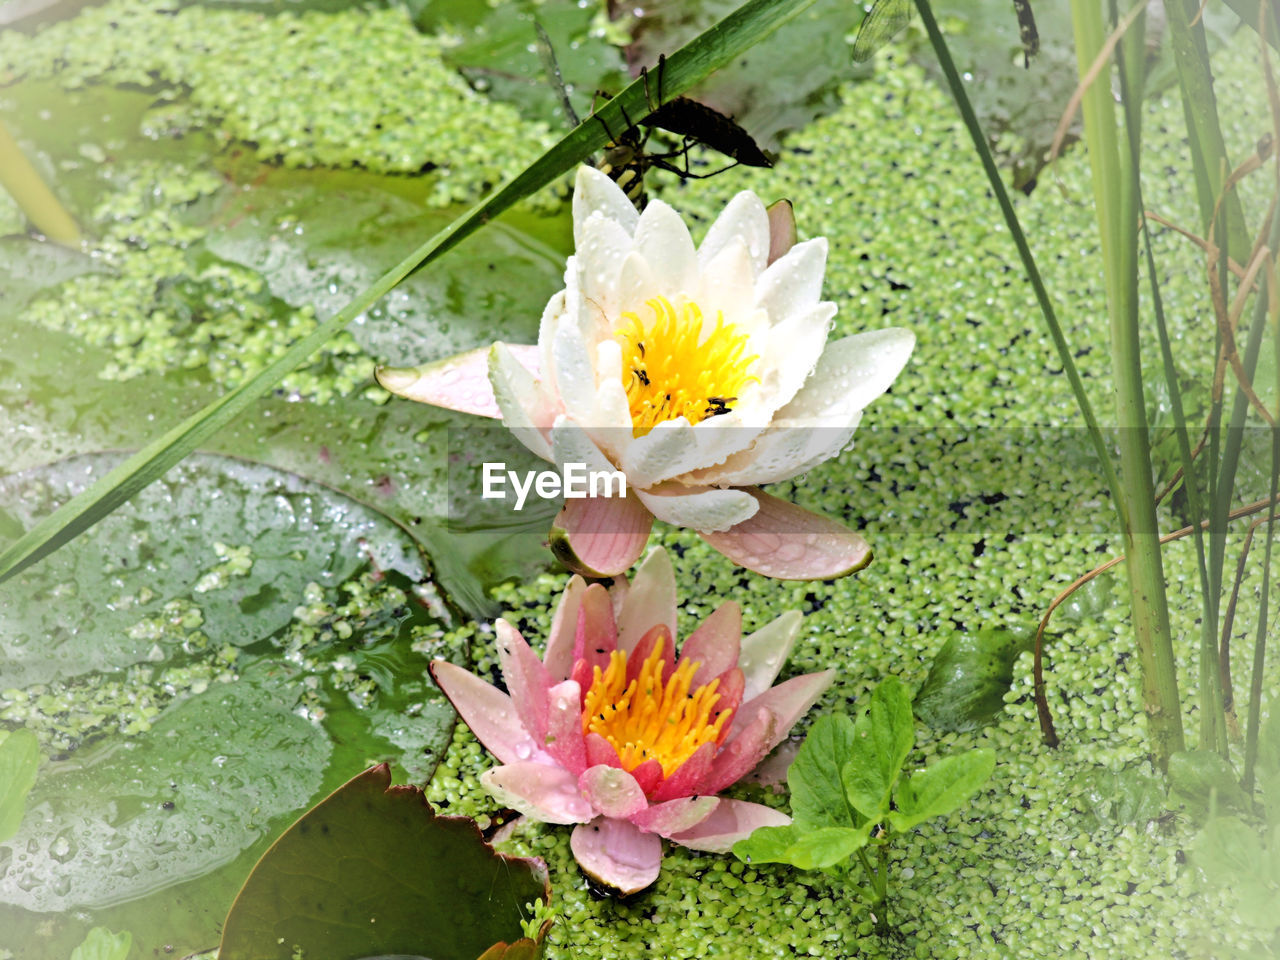 flower, fragility, nature, petal, freshness, growth, beauty in nature, flower head, green color, leaf, day, plant, outdoors, no people, blooming, water, close-up